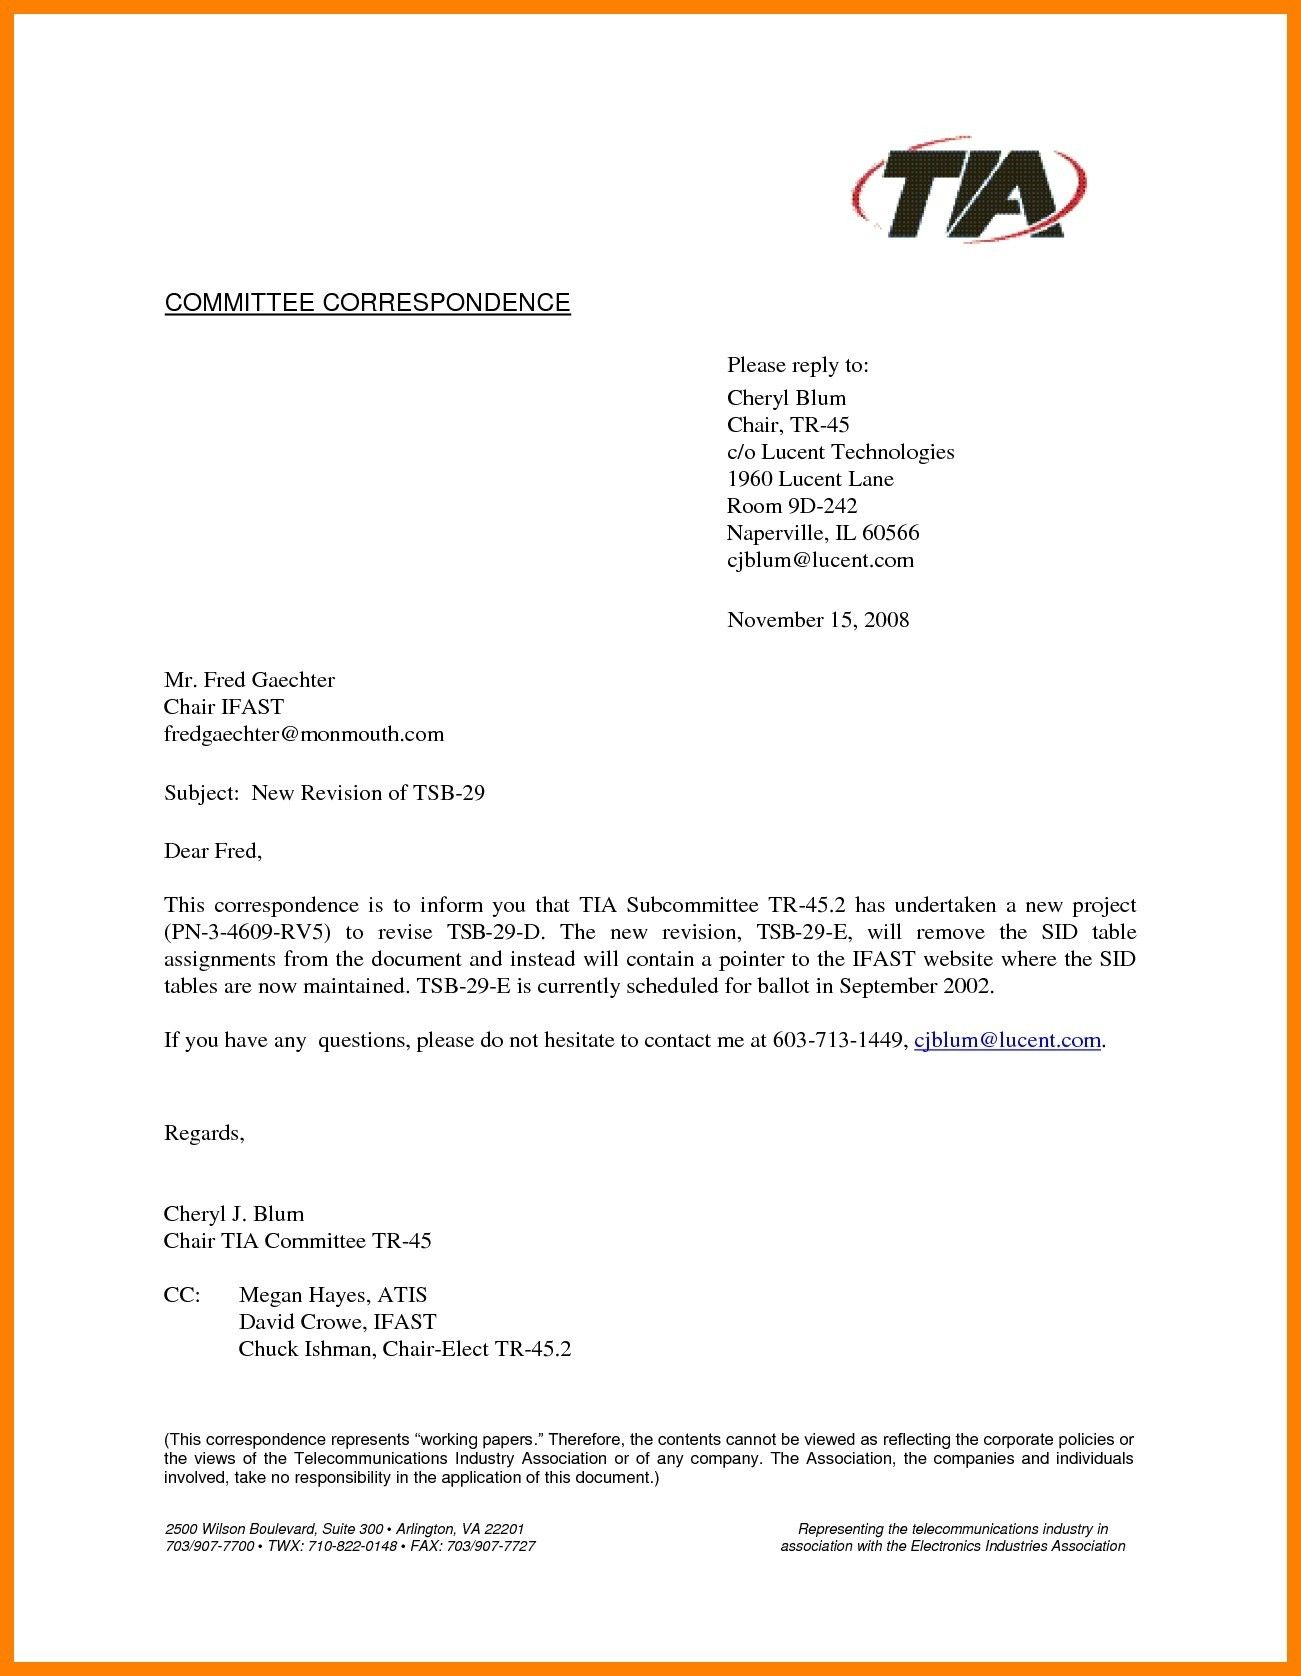 Letter Format With Cc Example 5 Letter Format With Cc Example Rituals You Should Know In 5 Professional Letter Template Lettering Letter Templates